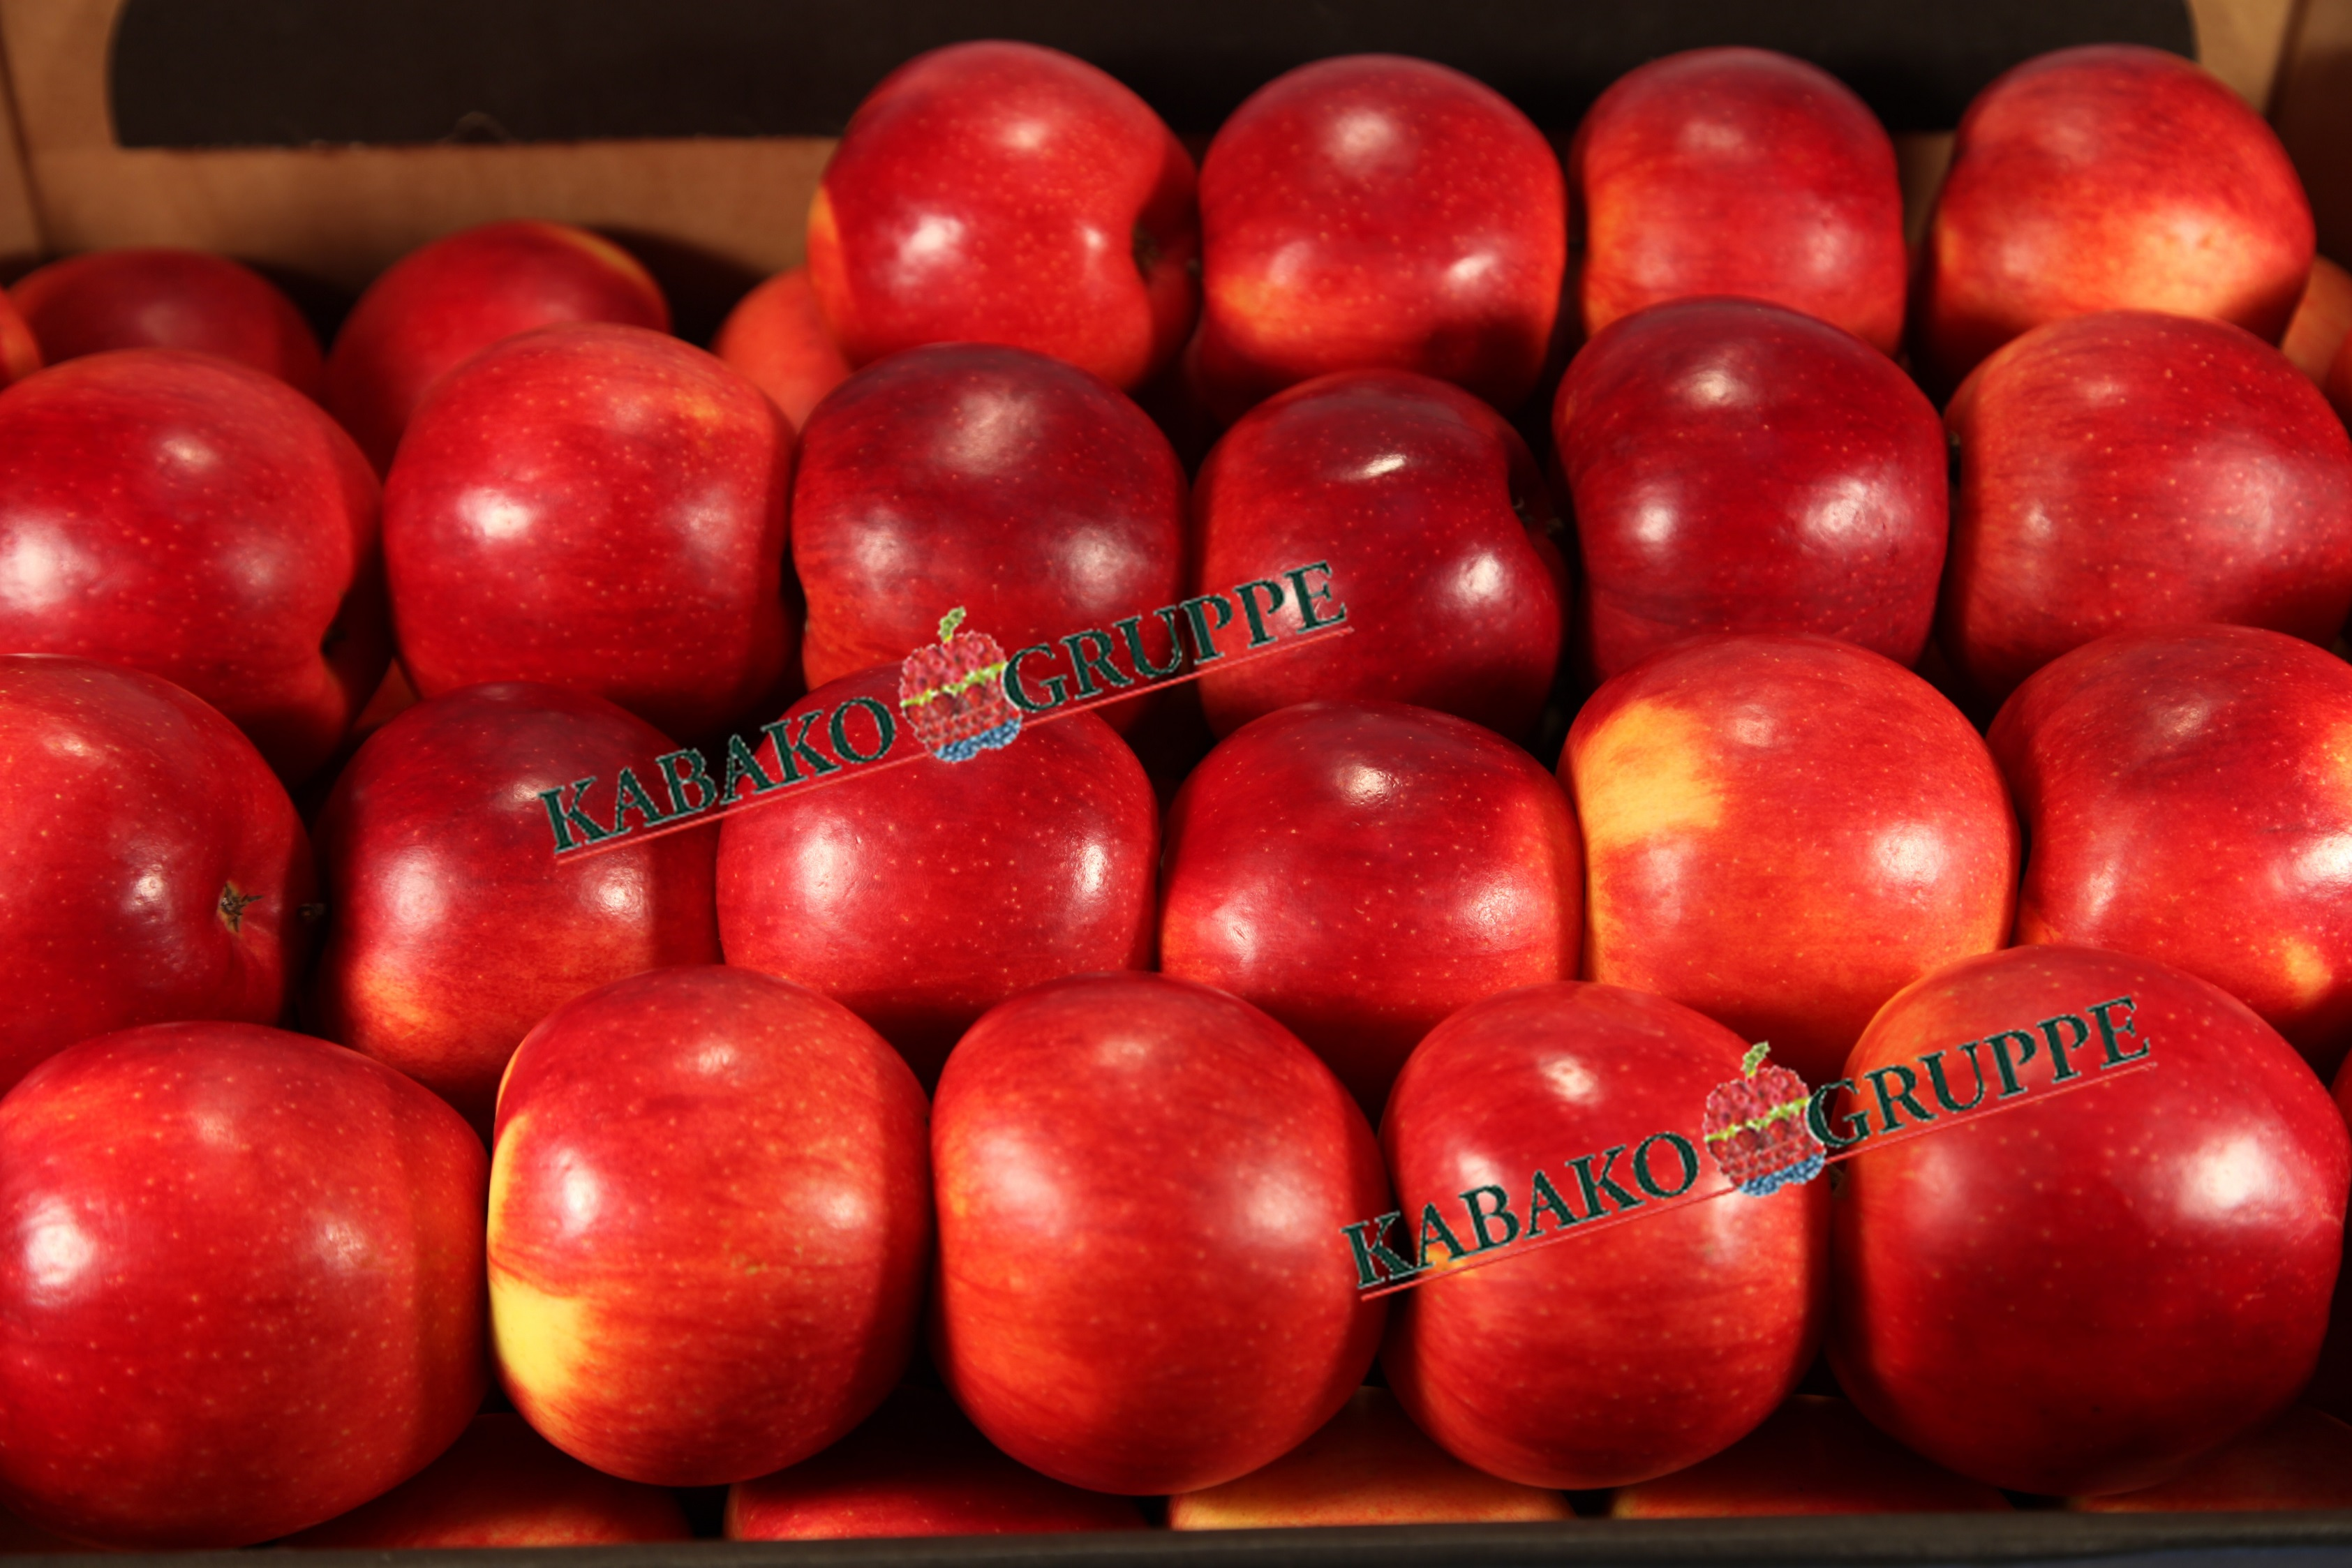 Frozen (IQF) Apples 51